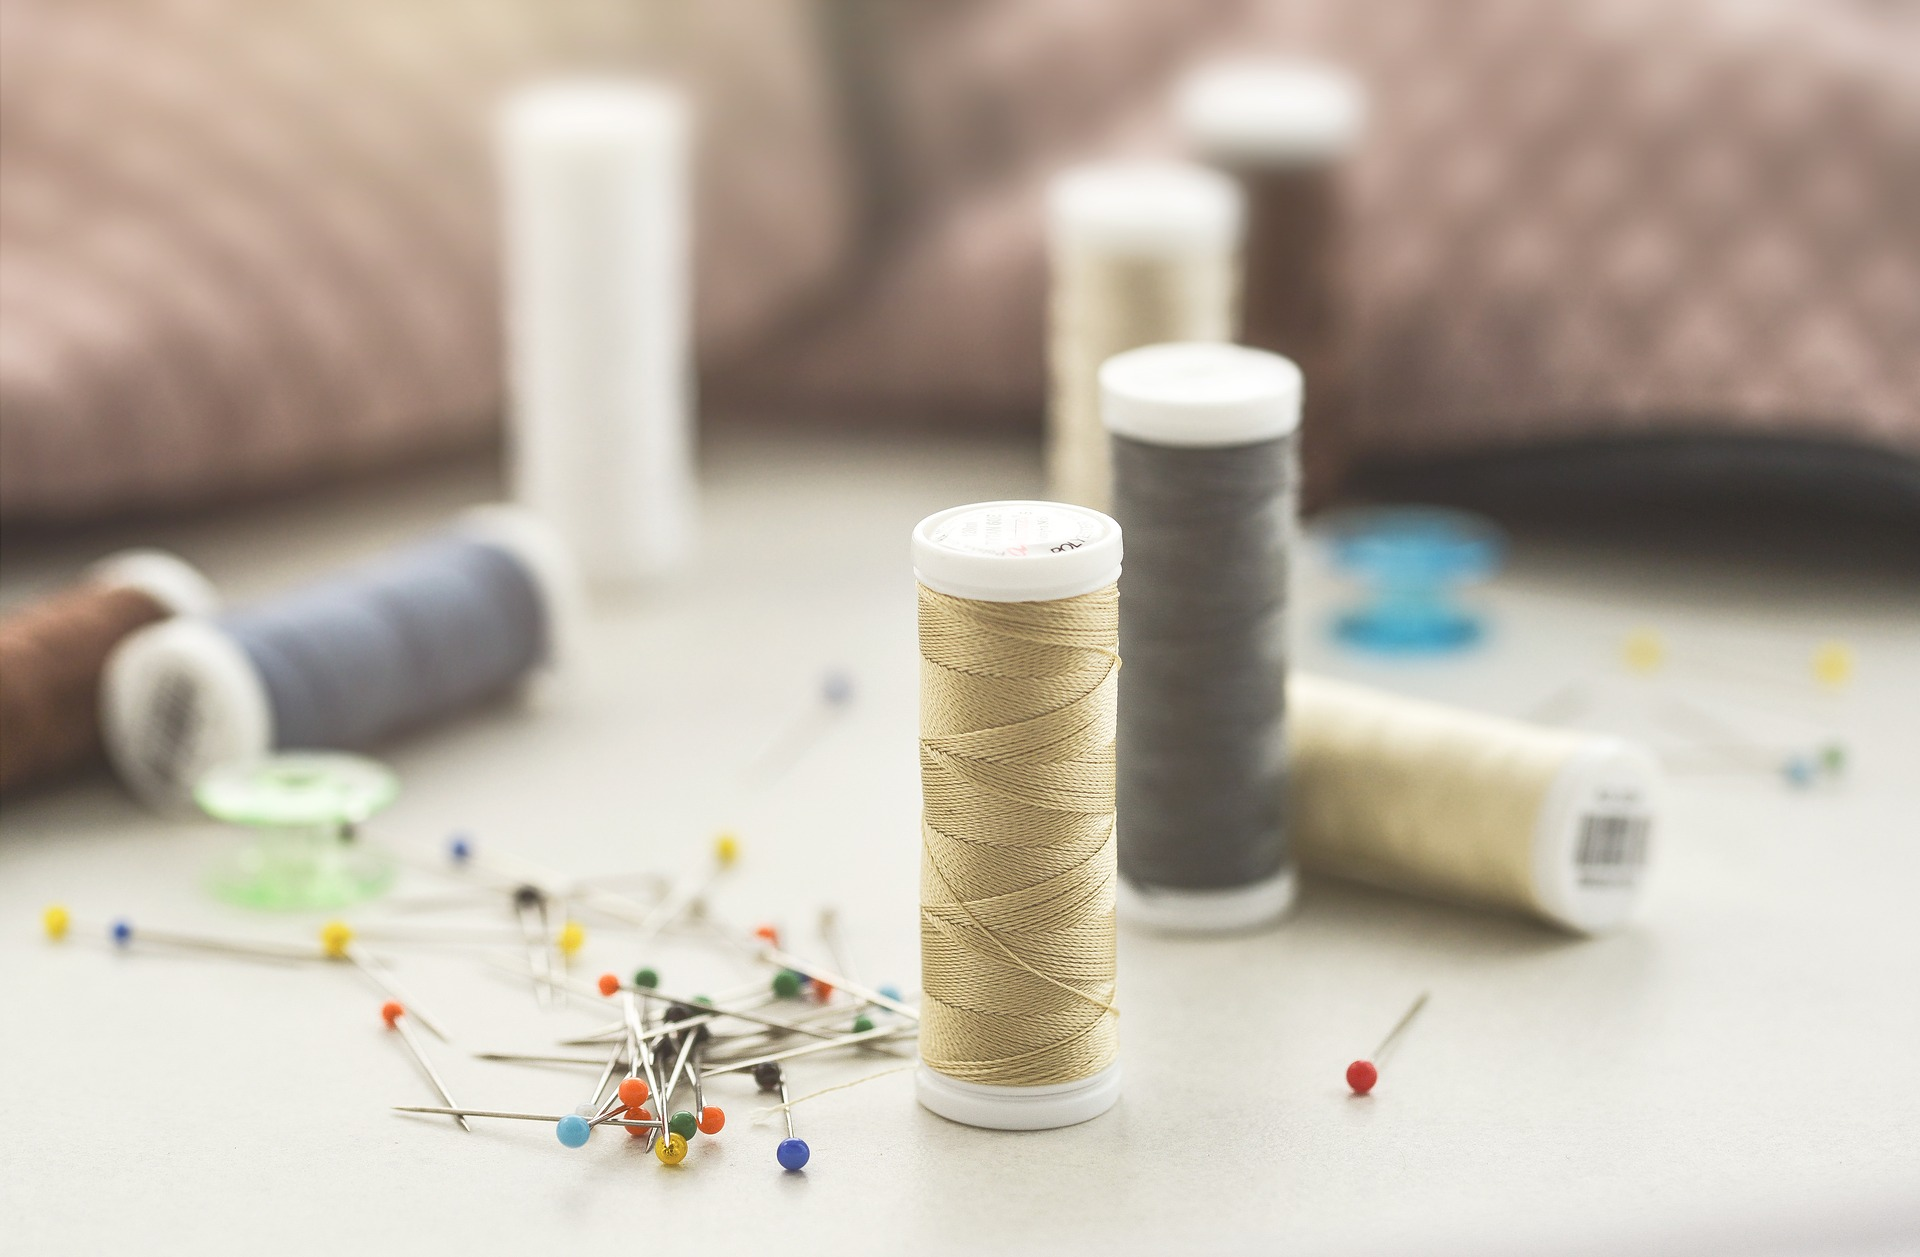 sewing-3405975_1920